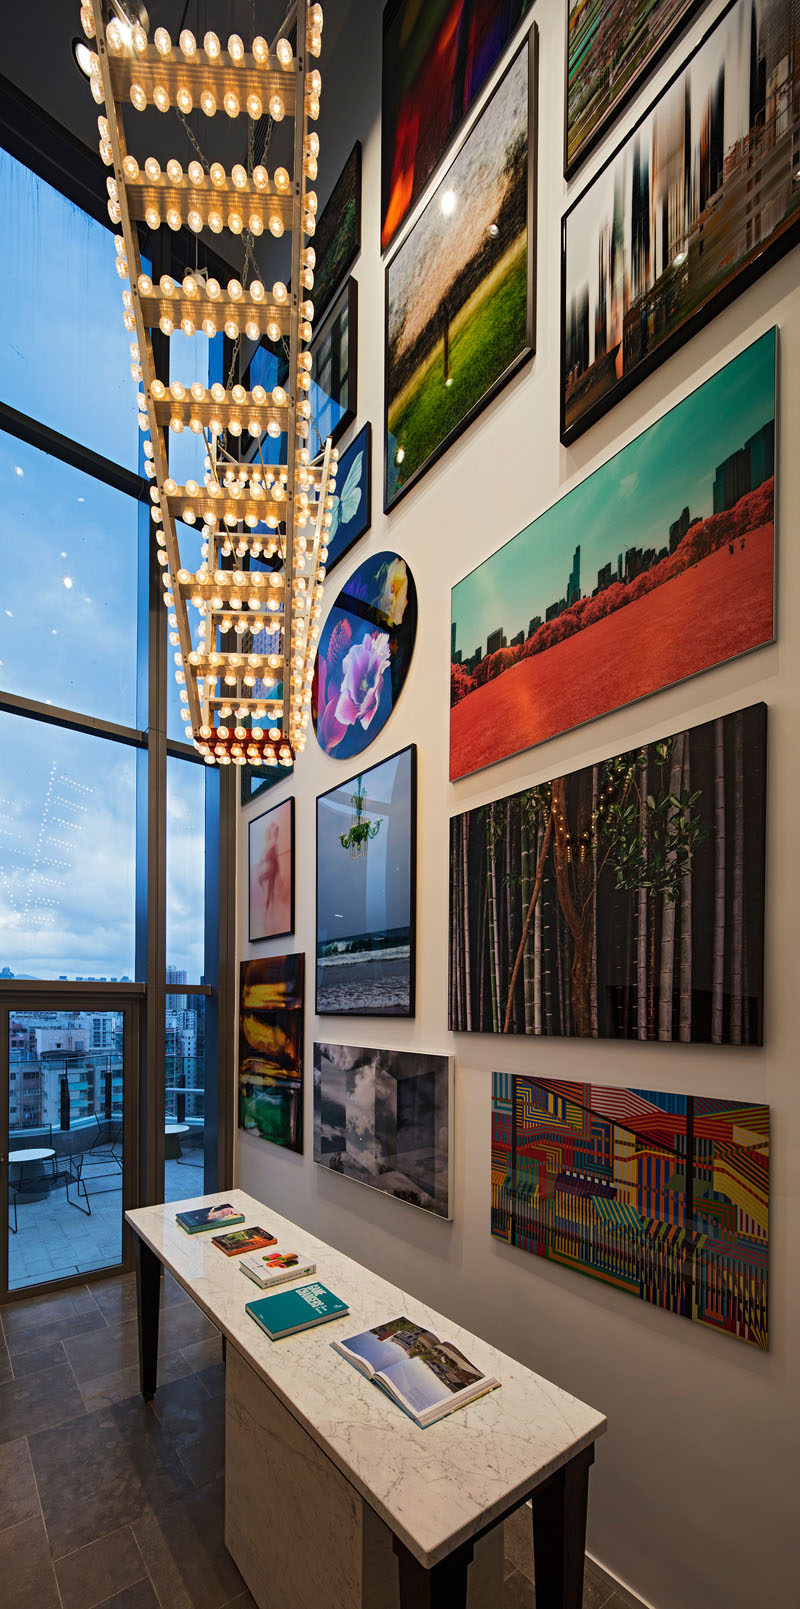 This modern clubhouse has a large wall gallery full of art.